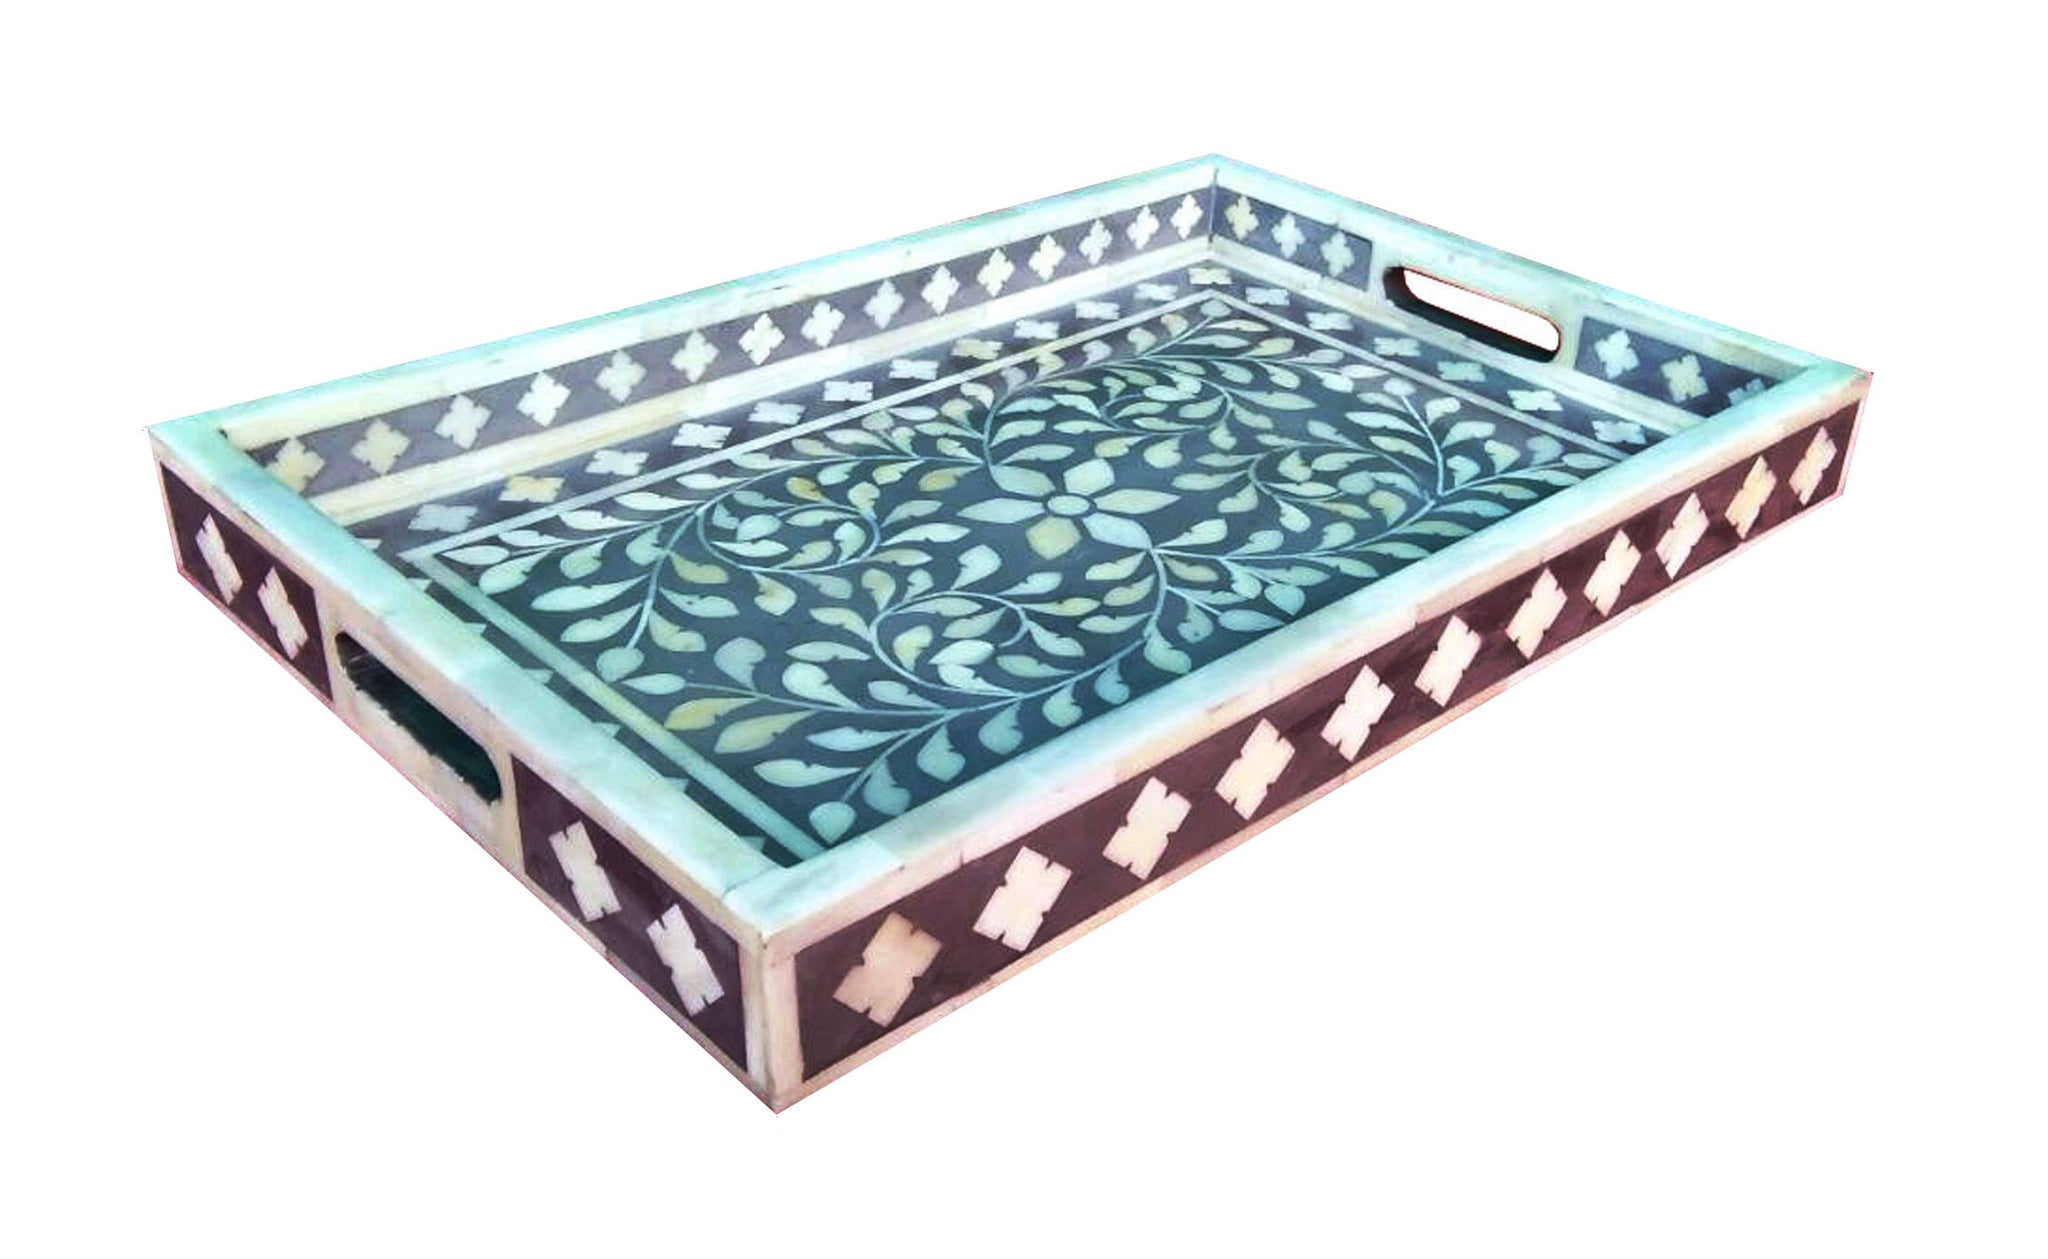 Floral Bone Inlay Serving Tray In Gray Favors Handicraft